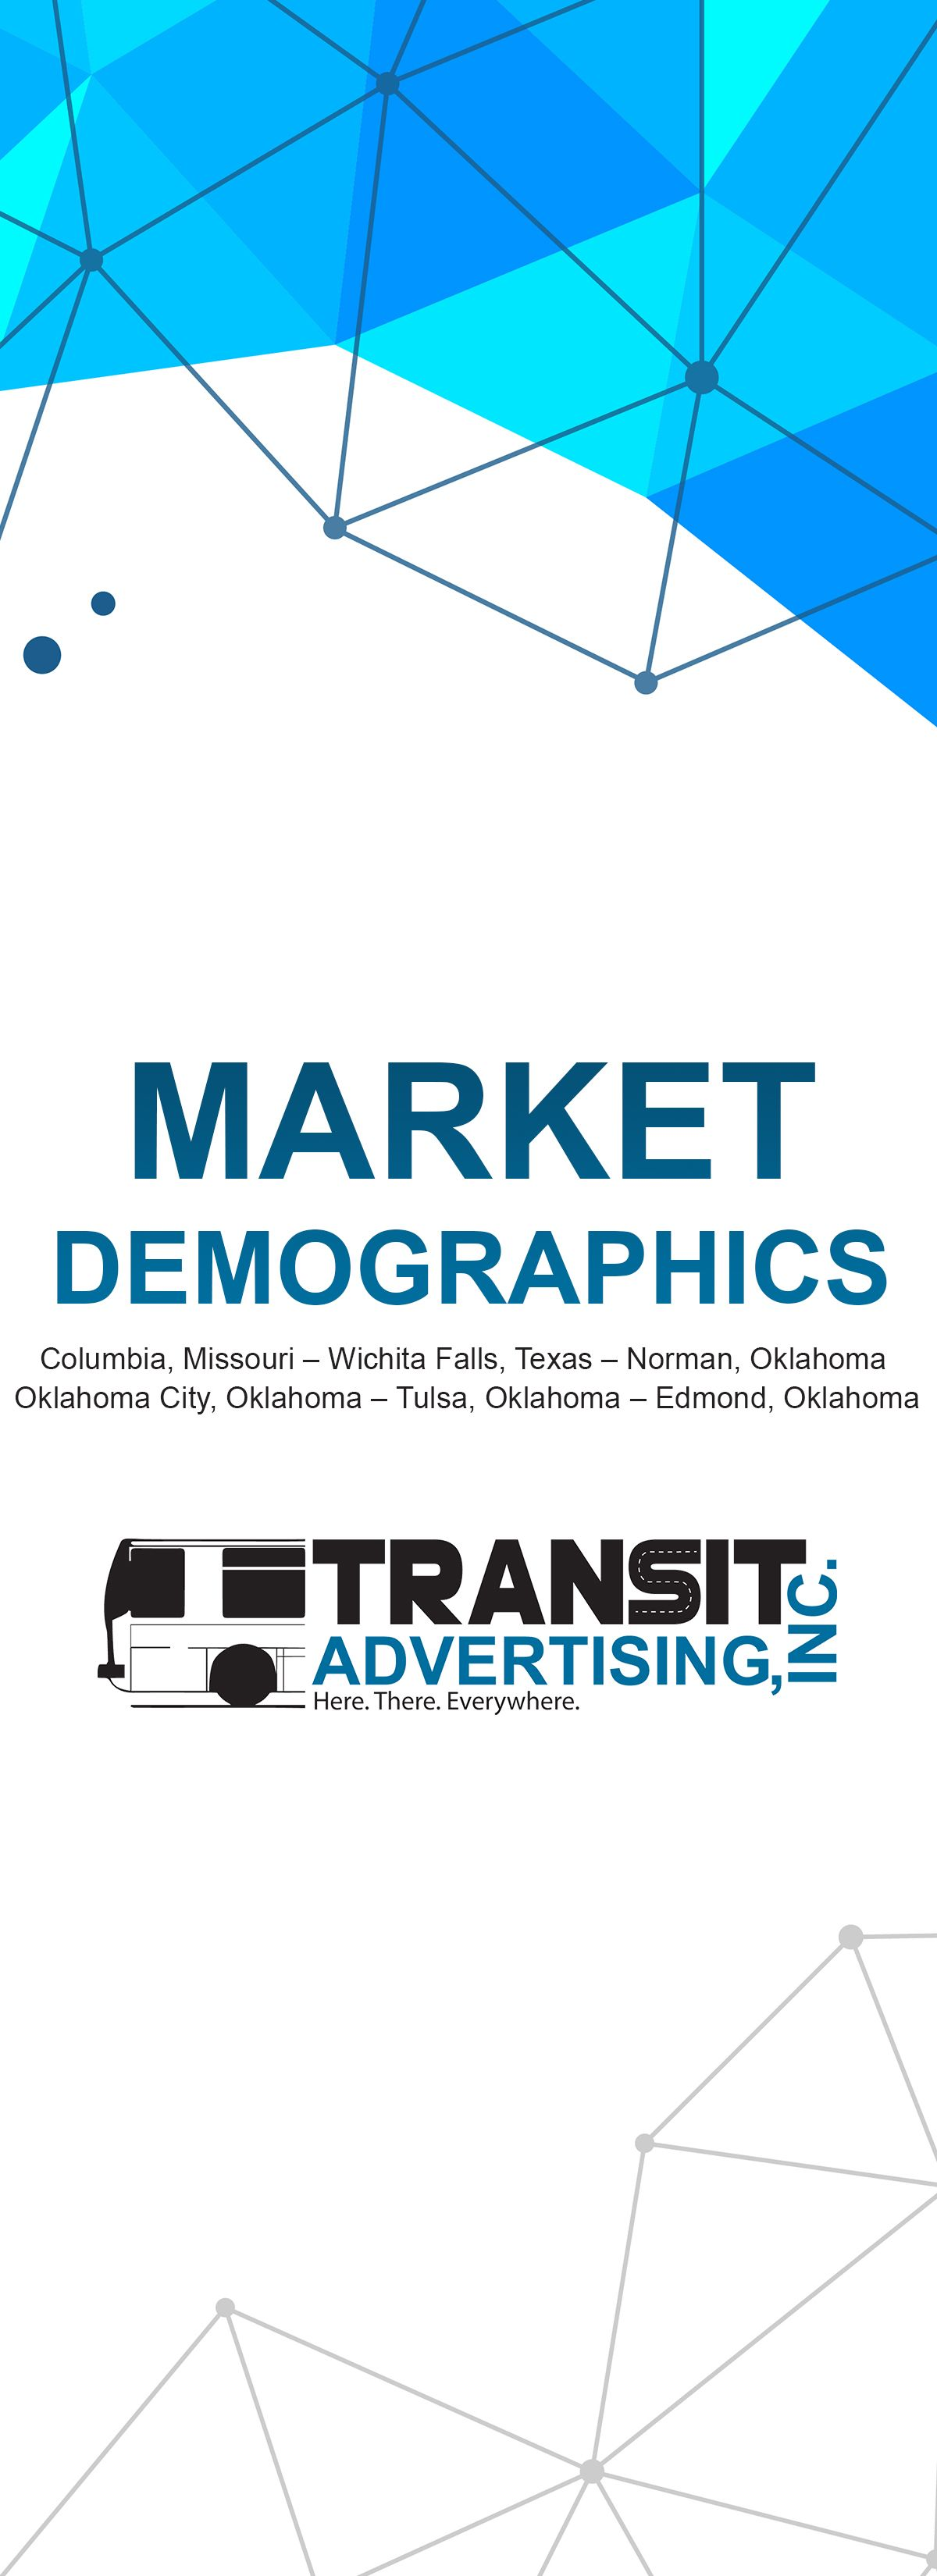 Learn More About The Drivers Pedestrians And Riders That Will See Your Transit Ads In The Markets We Serve Transit Ads Receiv Advertising Marketing Bus Advertising